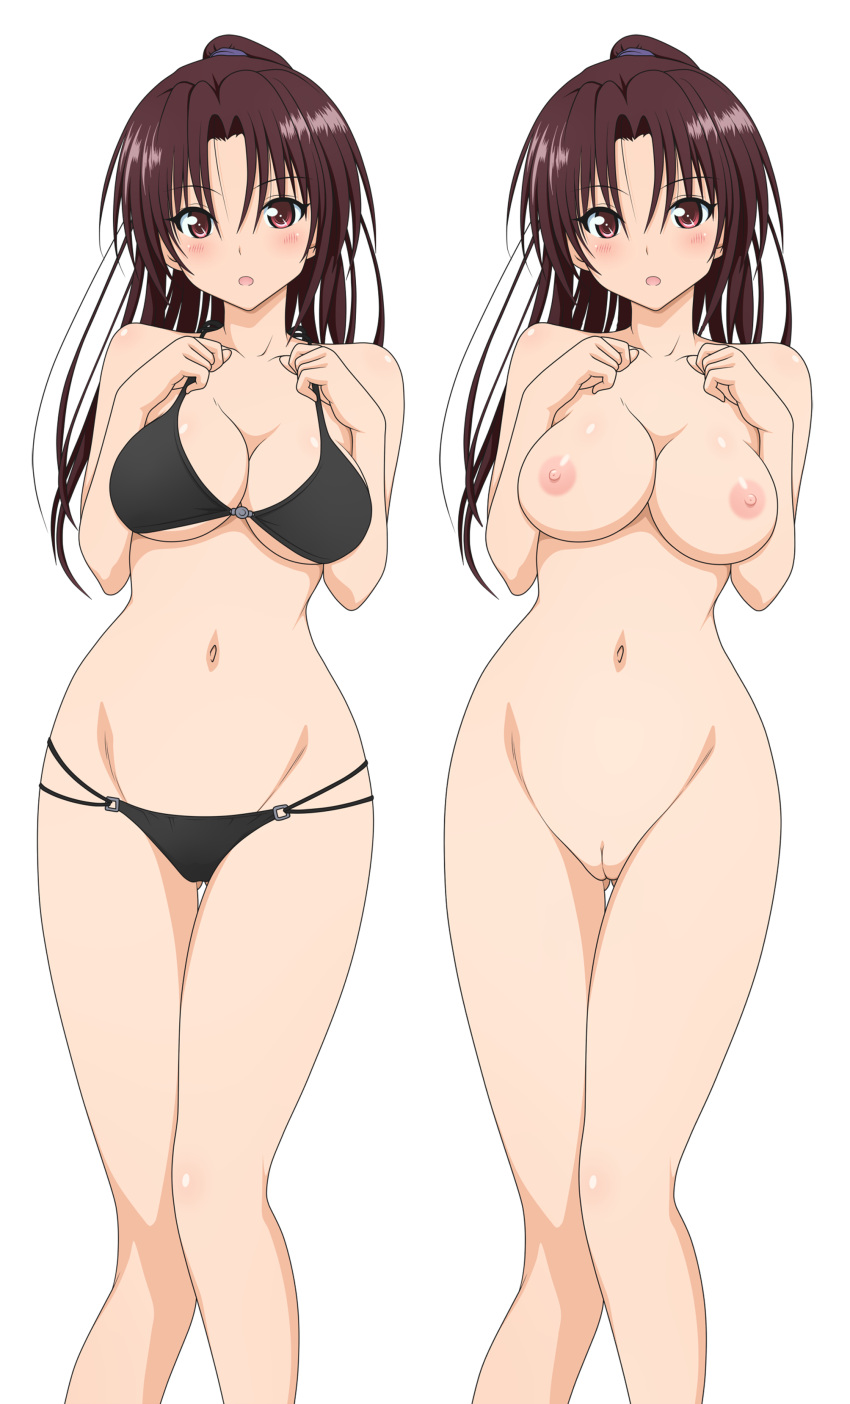 naked love ru to lala One piece reddit